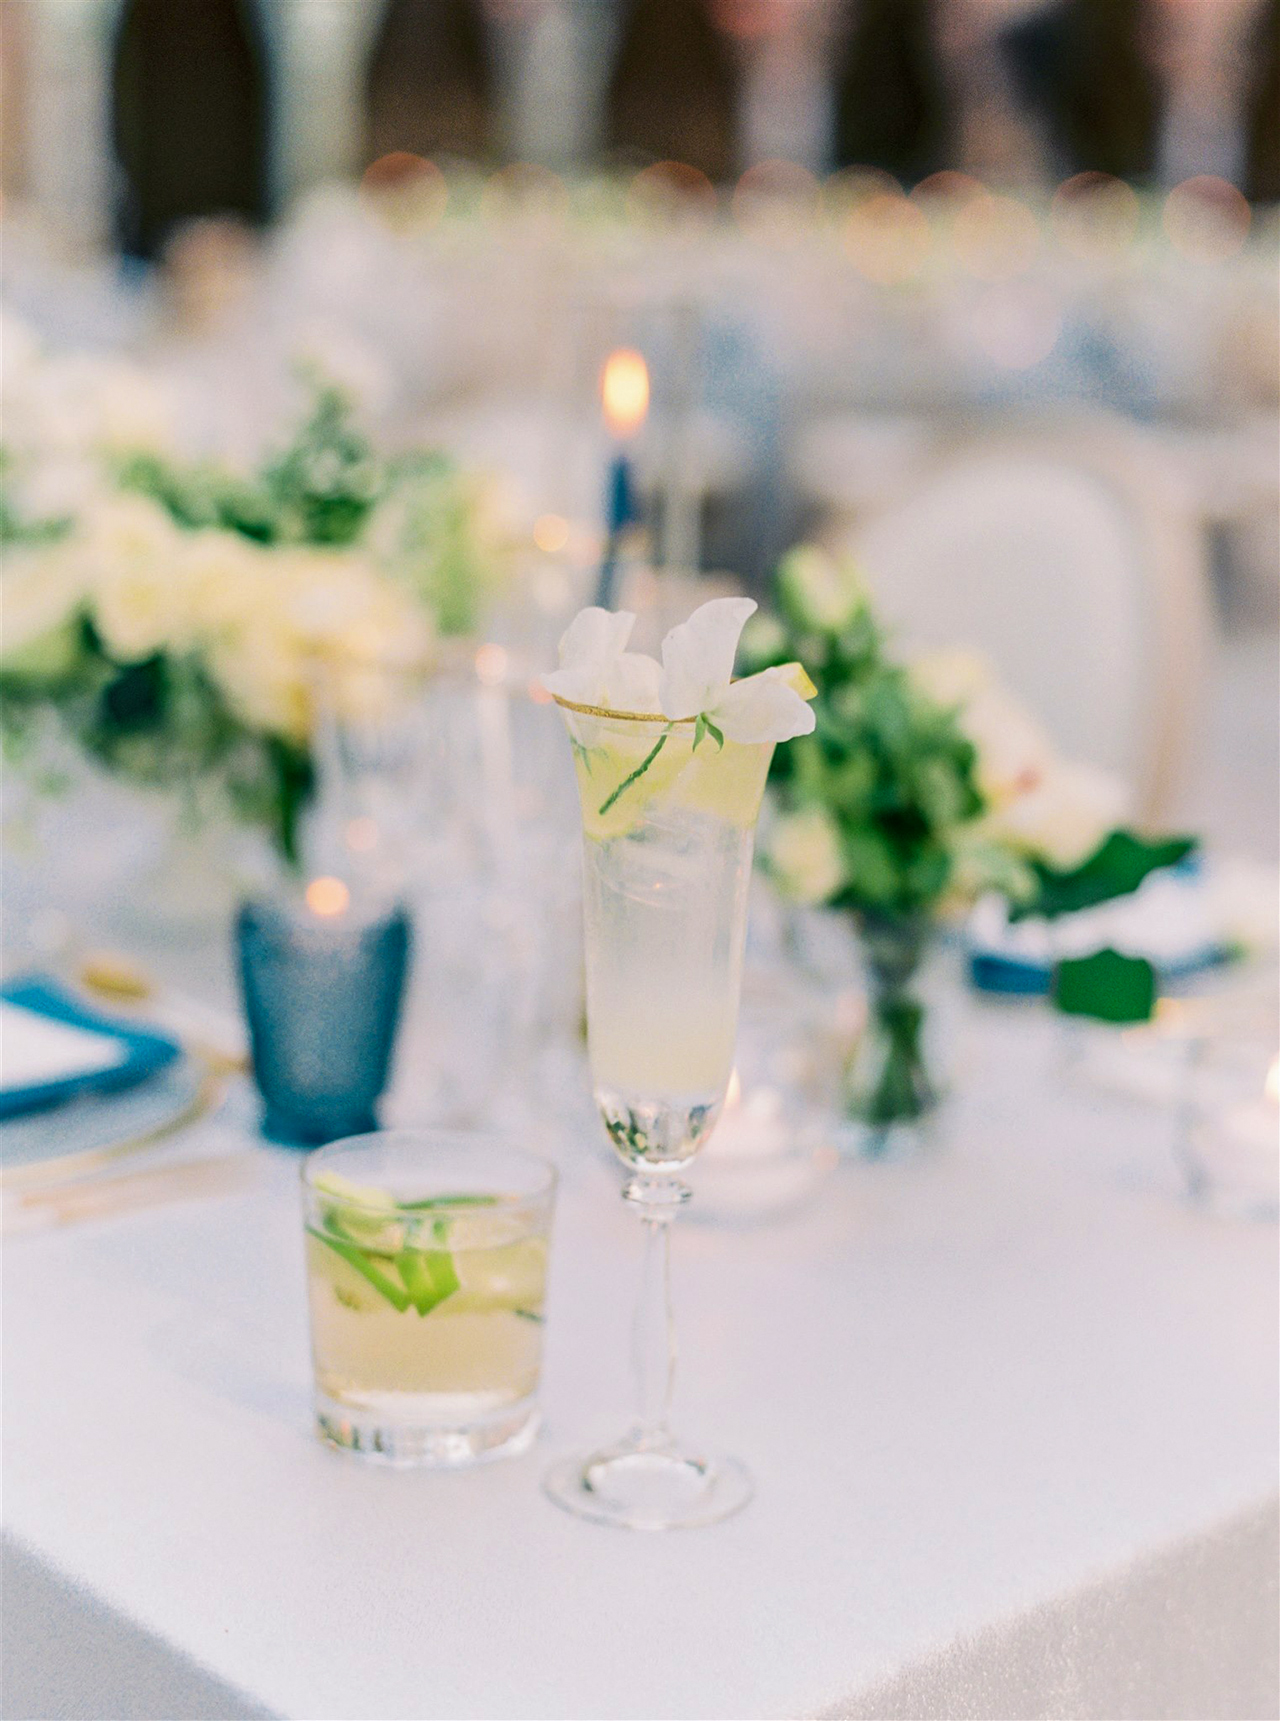 wedding cocktails french 75 vodka transfusion